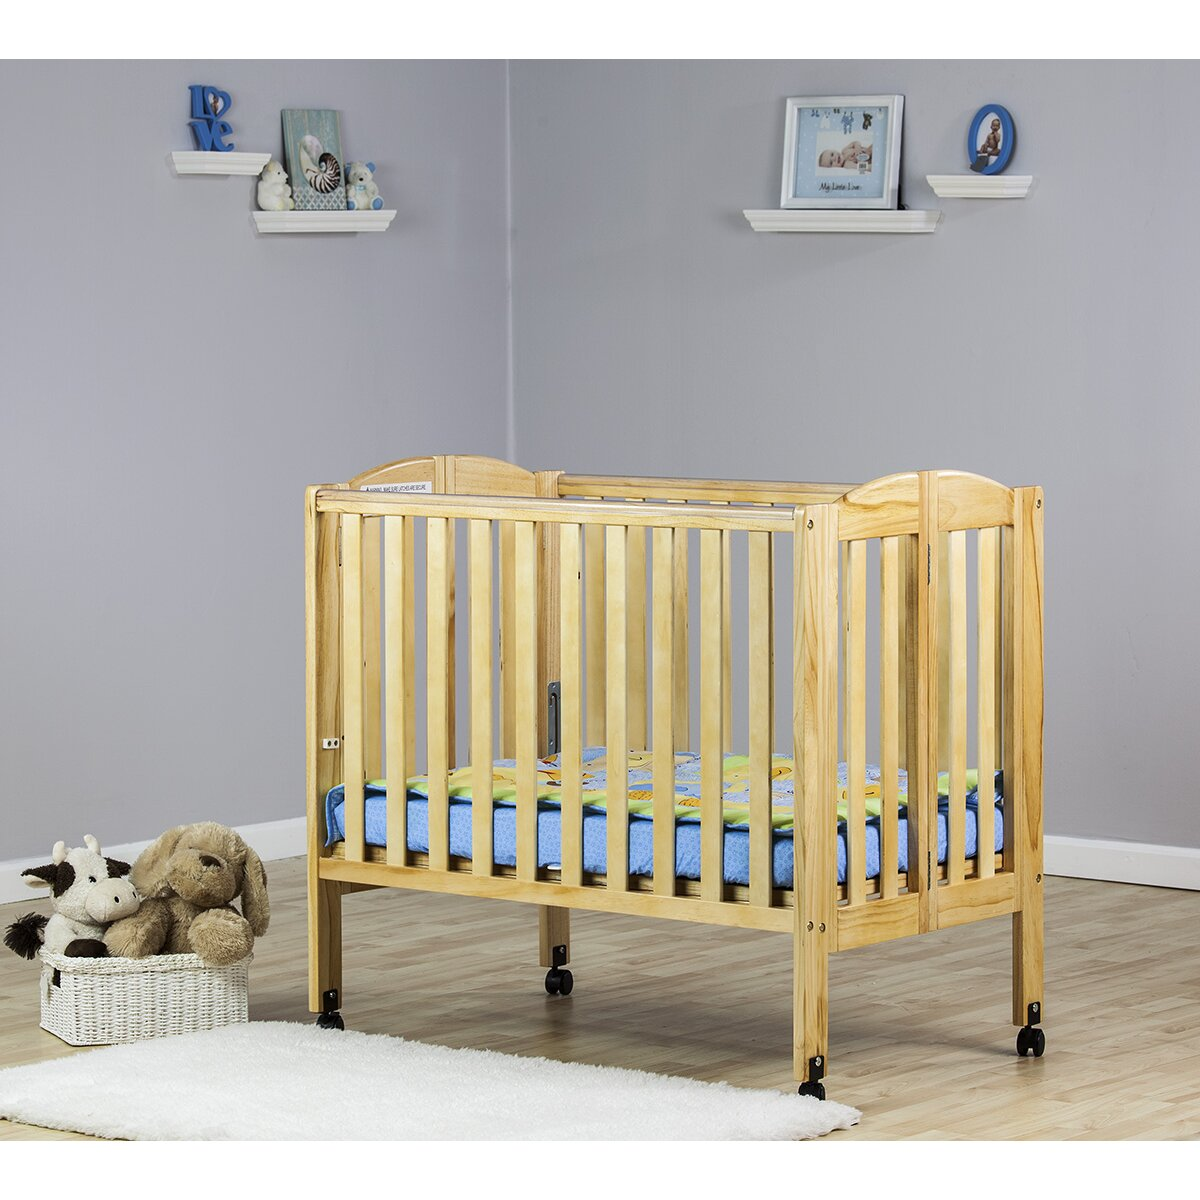 Ellery round crib for sale - Quick View